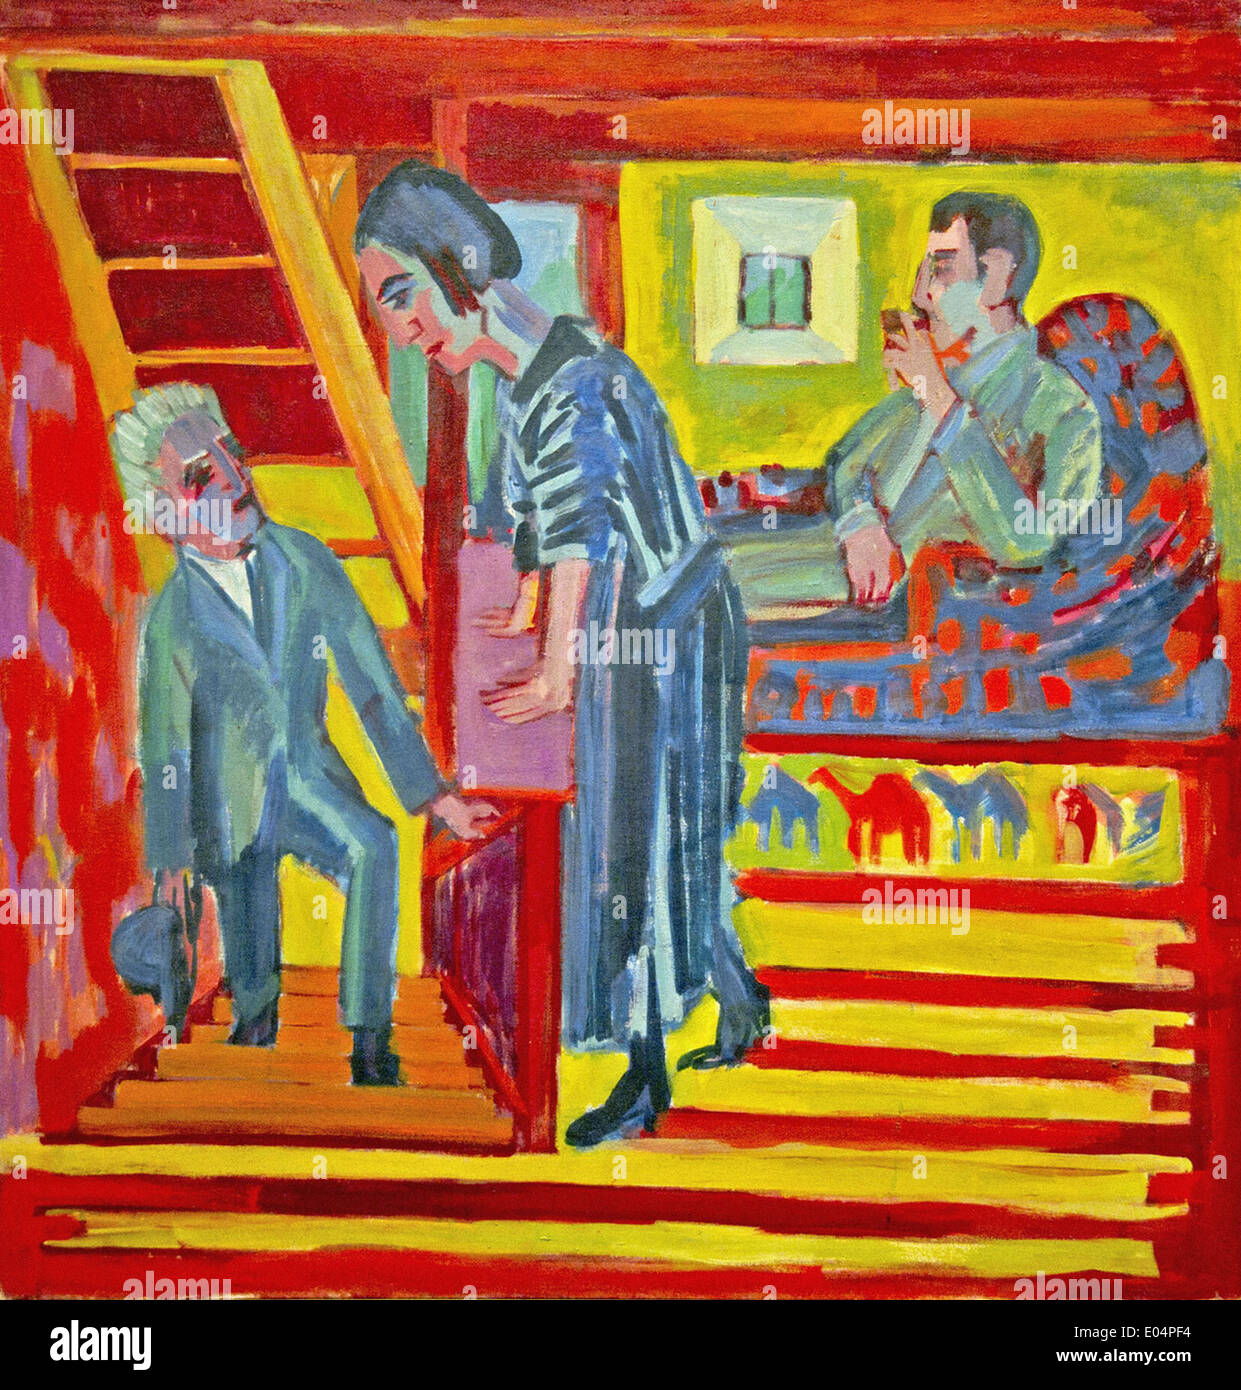 Ernst Ludwig Kirchner The Visit - Couple and Newcomer - Stock Image